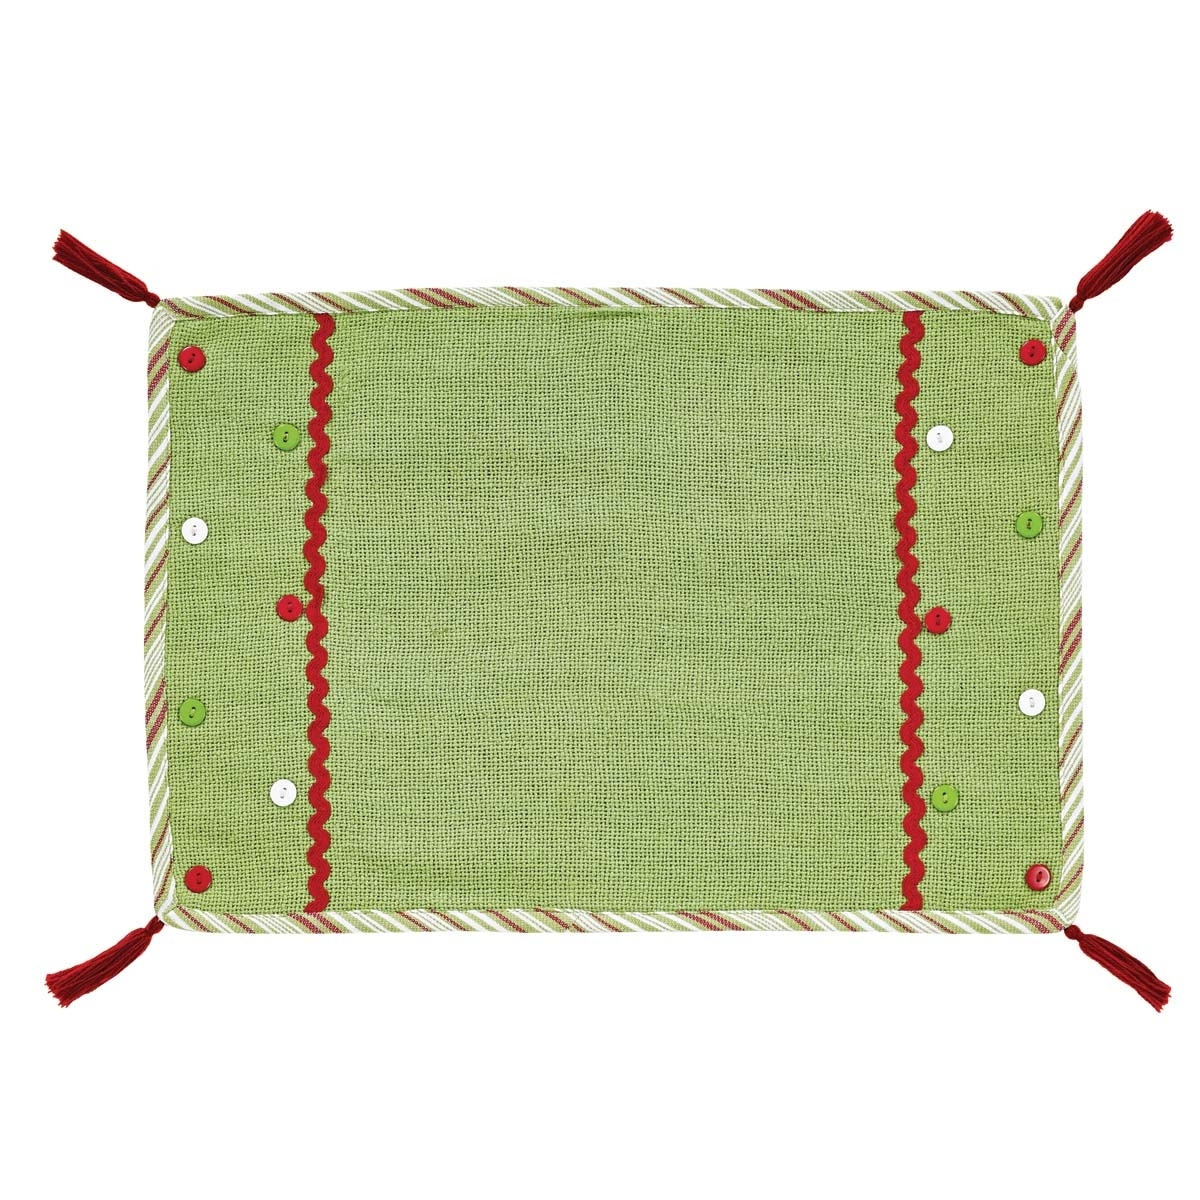 Seasonal Tabletop & Kitchen Whimsical Christmas Green Placemat Set of 6 5b17f29d2a00e41be80d1151